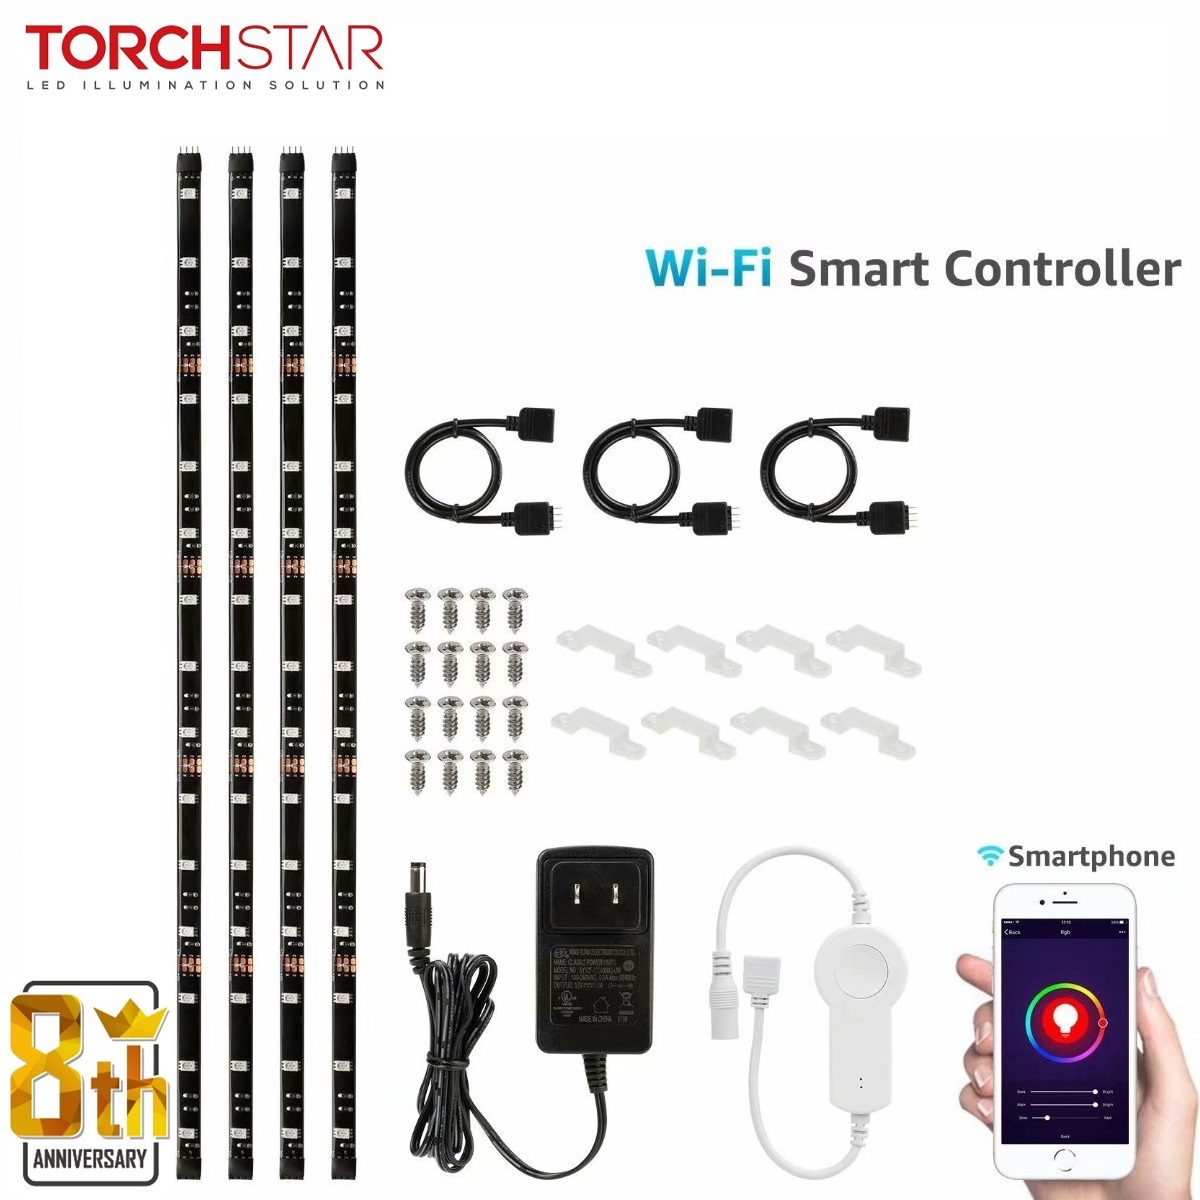 TORCHSTAR LED Dimmable TV Backlight Kit Multi-Color Strip Light, LED Lights for TV, Work with Smart Phone Control, 4pcs Waterproof Strip Lights, Flexible Strips Home Theater